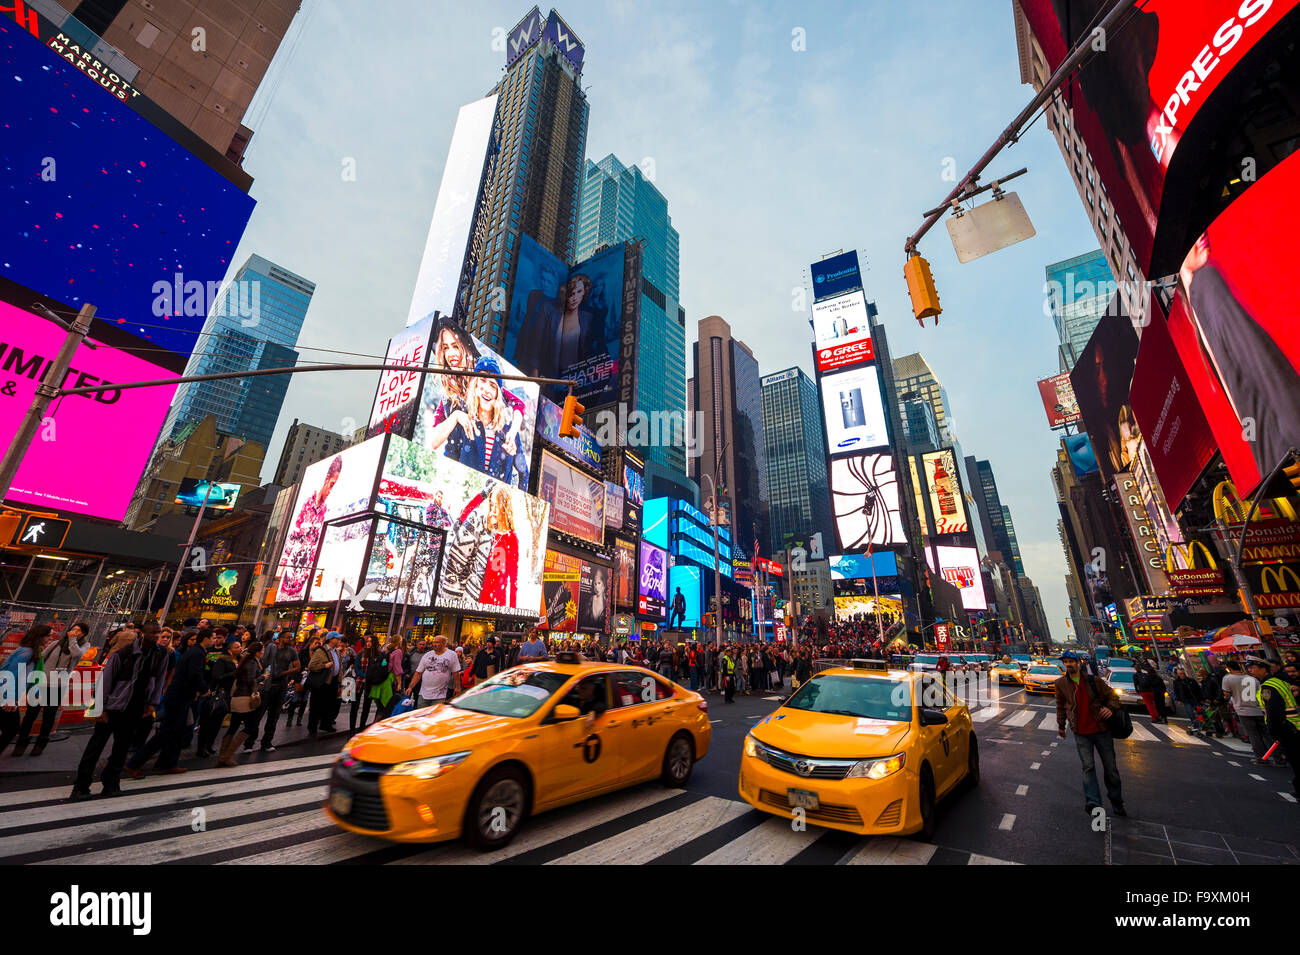 NEW YORK CITY, USA - DECEMBER 13, 2015: Bright signage flashes over holiday crowds and traffic in Times Square before - Stock Image